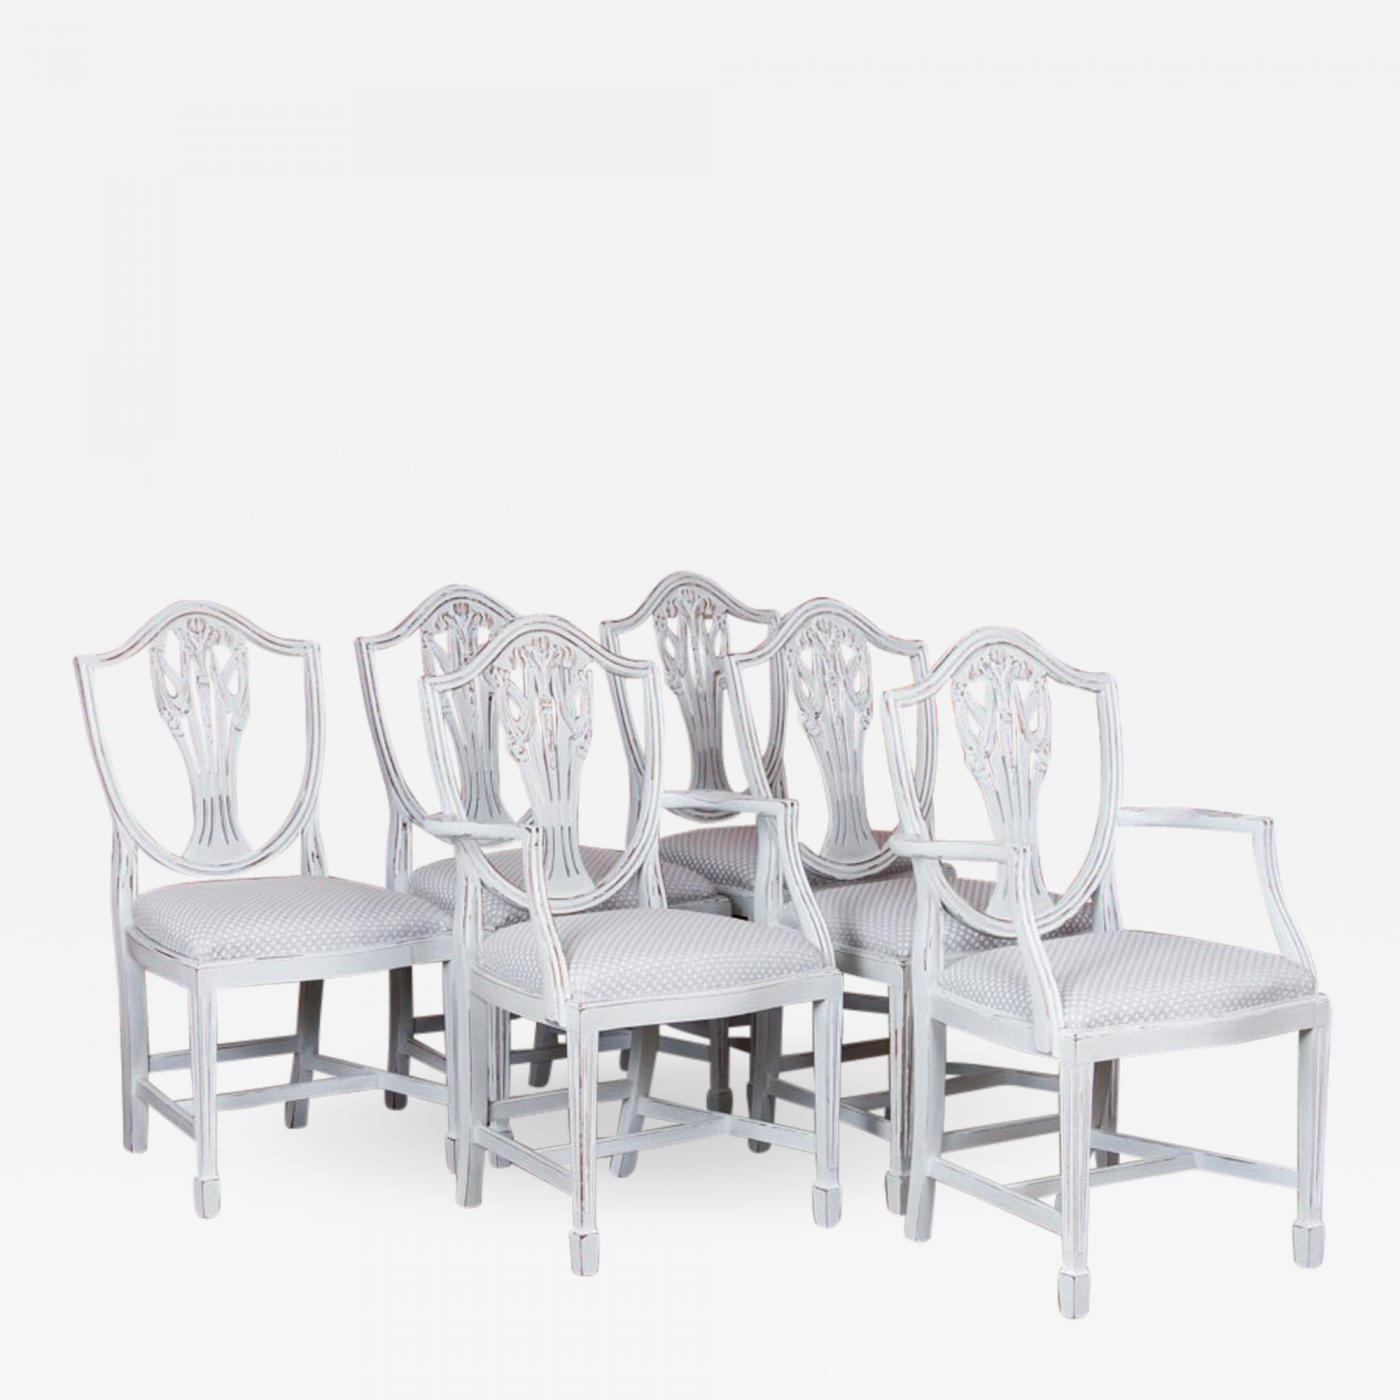 Antique White Dining Chairs Set Of Six Antique White Painted Swedish Dining Chairs